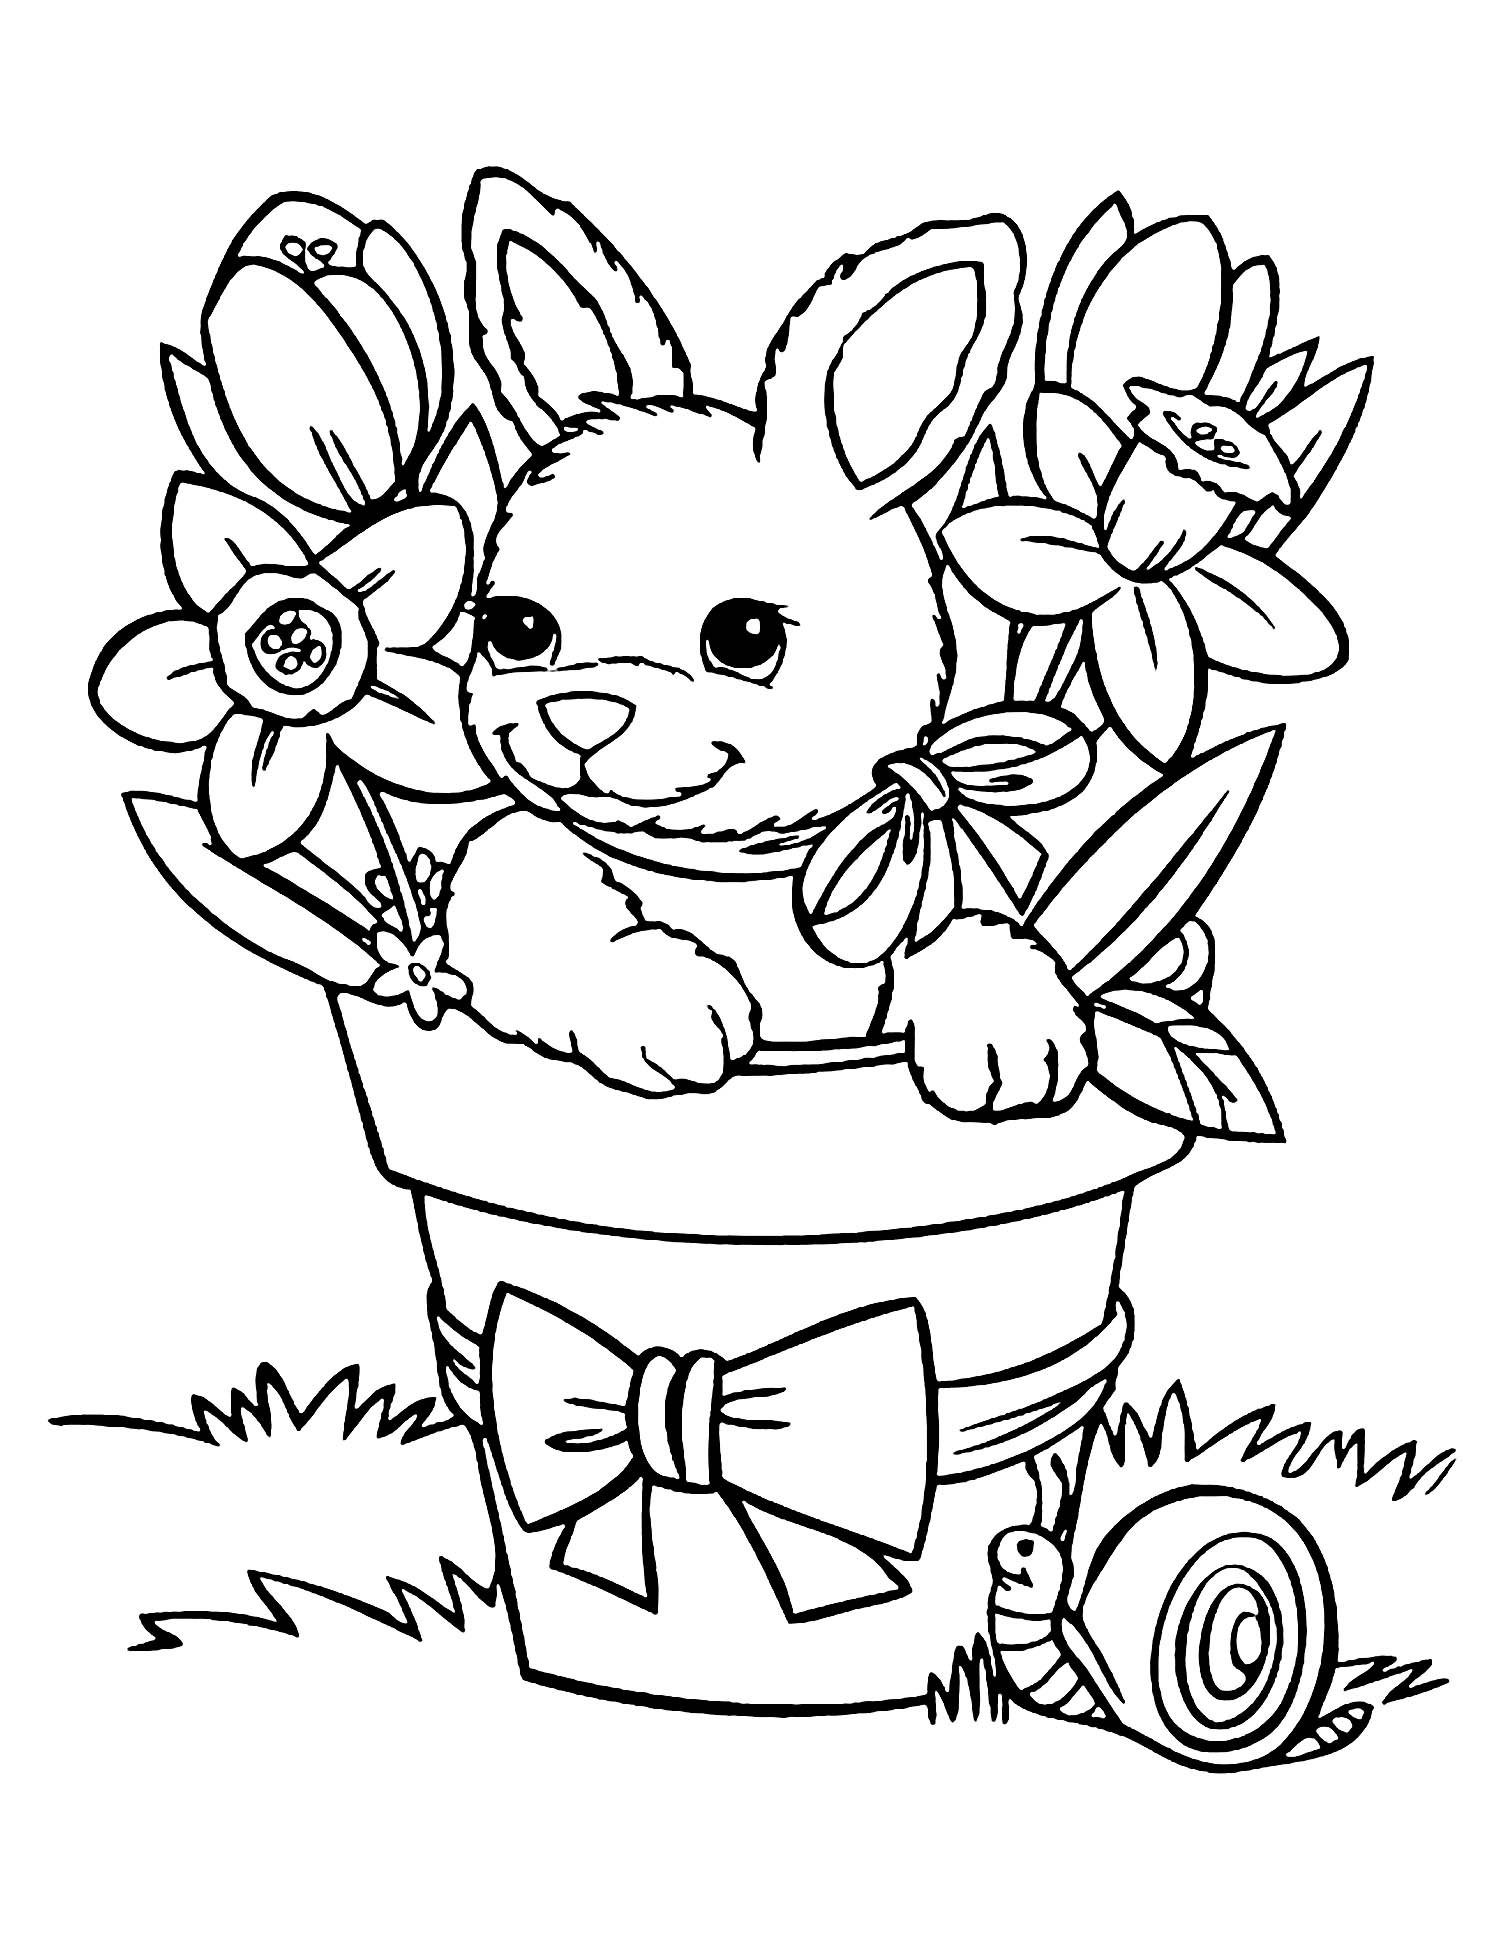 bunny coloring pictures 60 rabbit shape templates and crafts colouring pages pictures coloring bunny